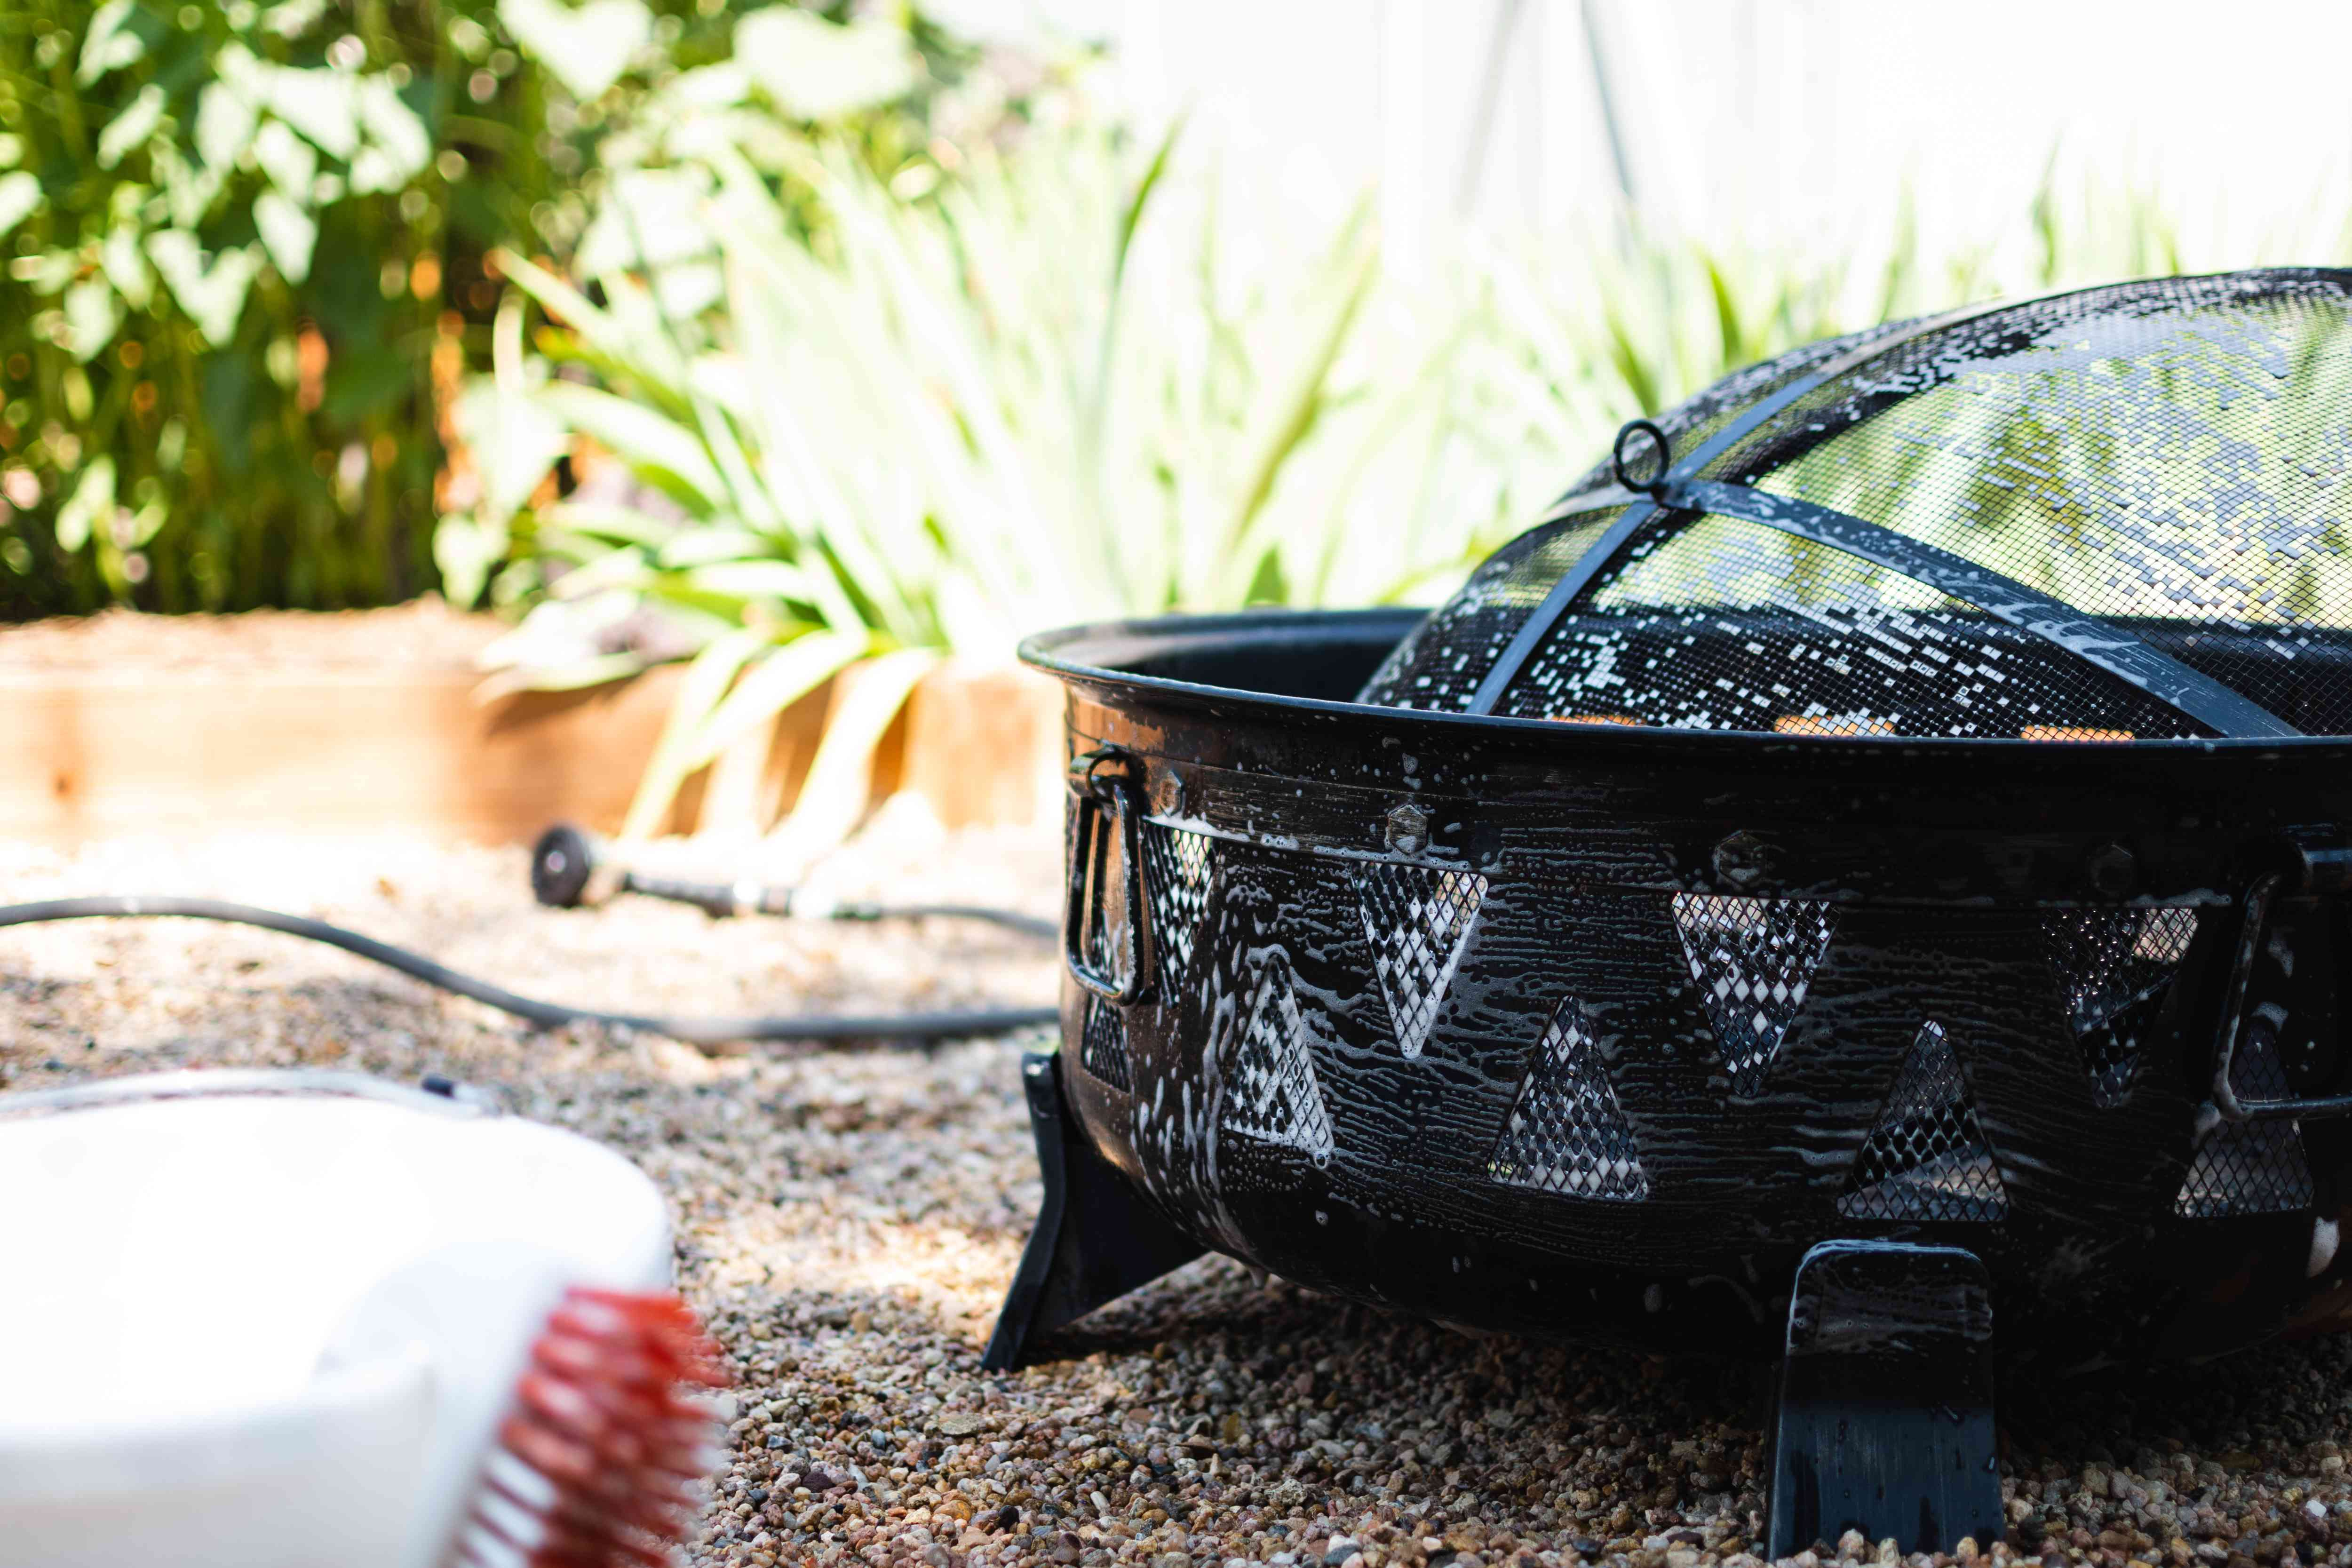 Black metal fire pit scrubbed with cleaning solution